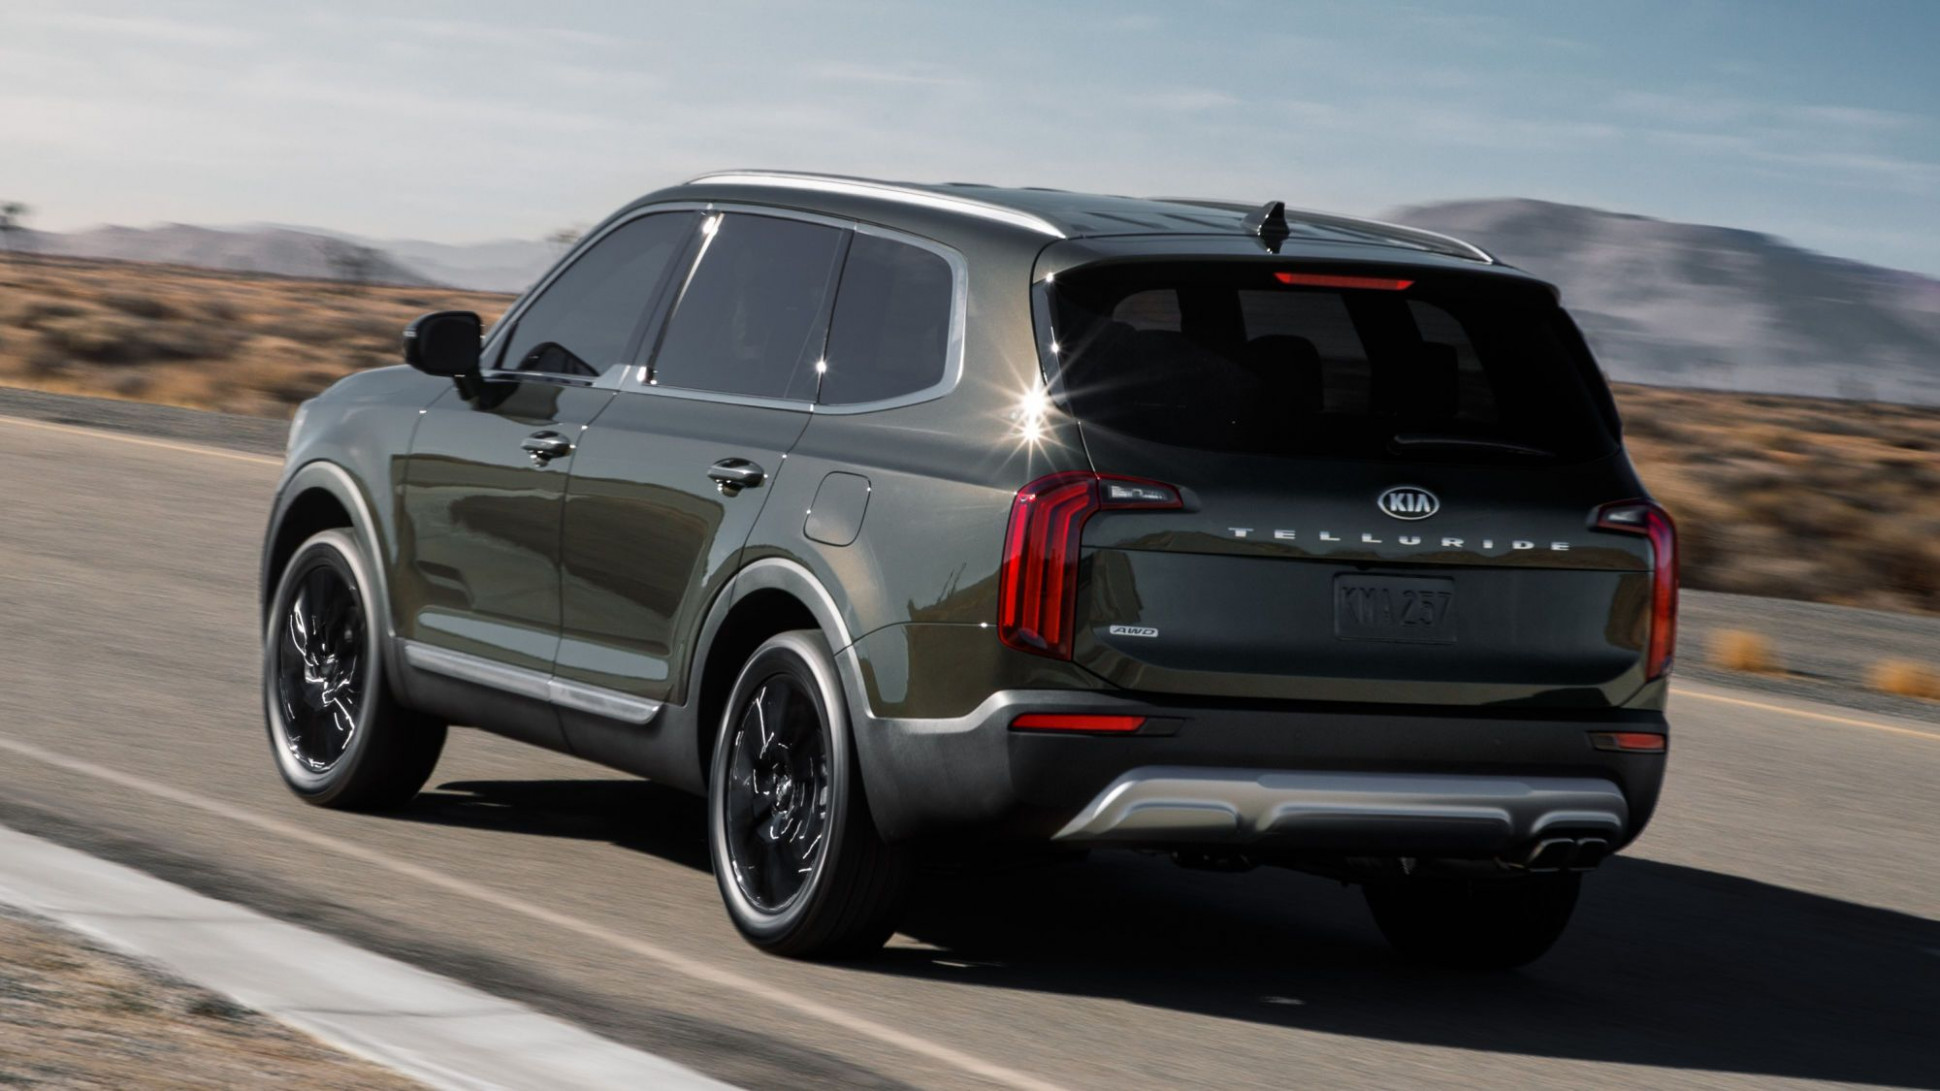 8 Kia Telluride Reviews (With images) | Best midsize suv, Suv - 2020 kia telluride review